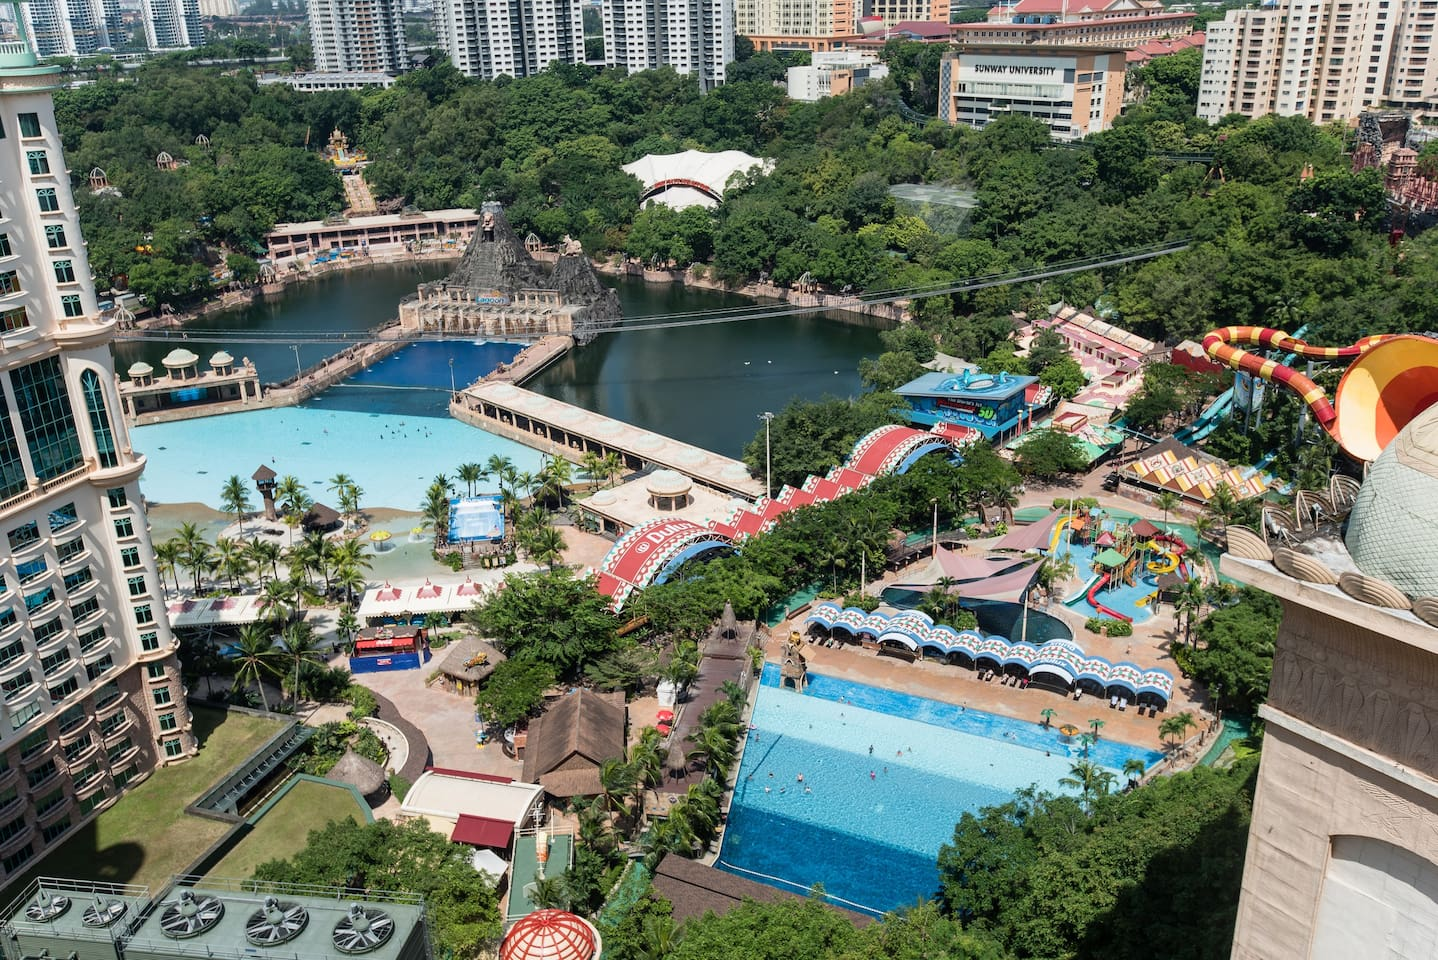 Sunway Lagoon is just next to the Pyramid Hotel Entrance